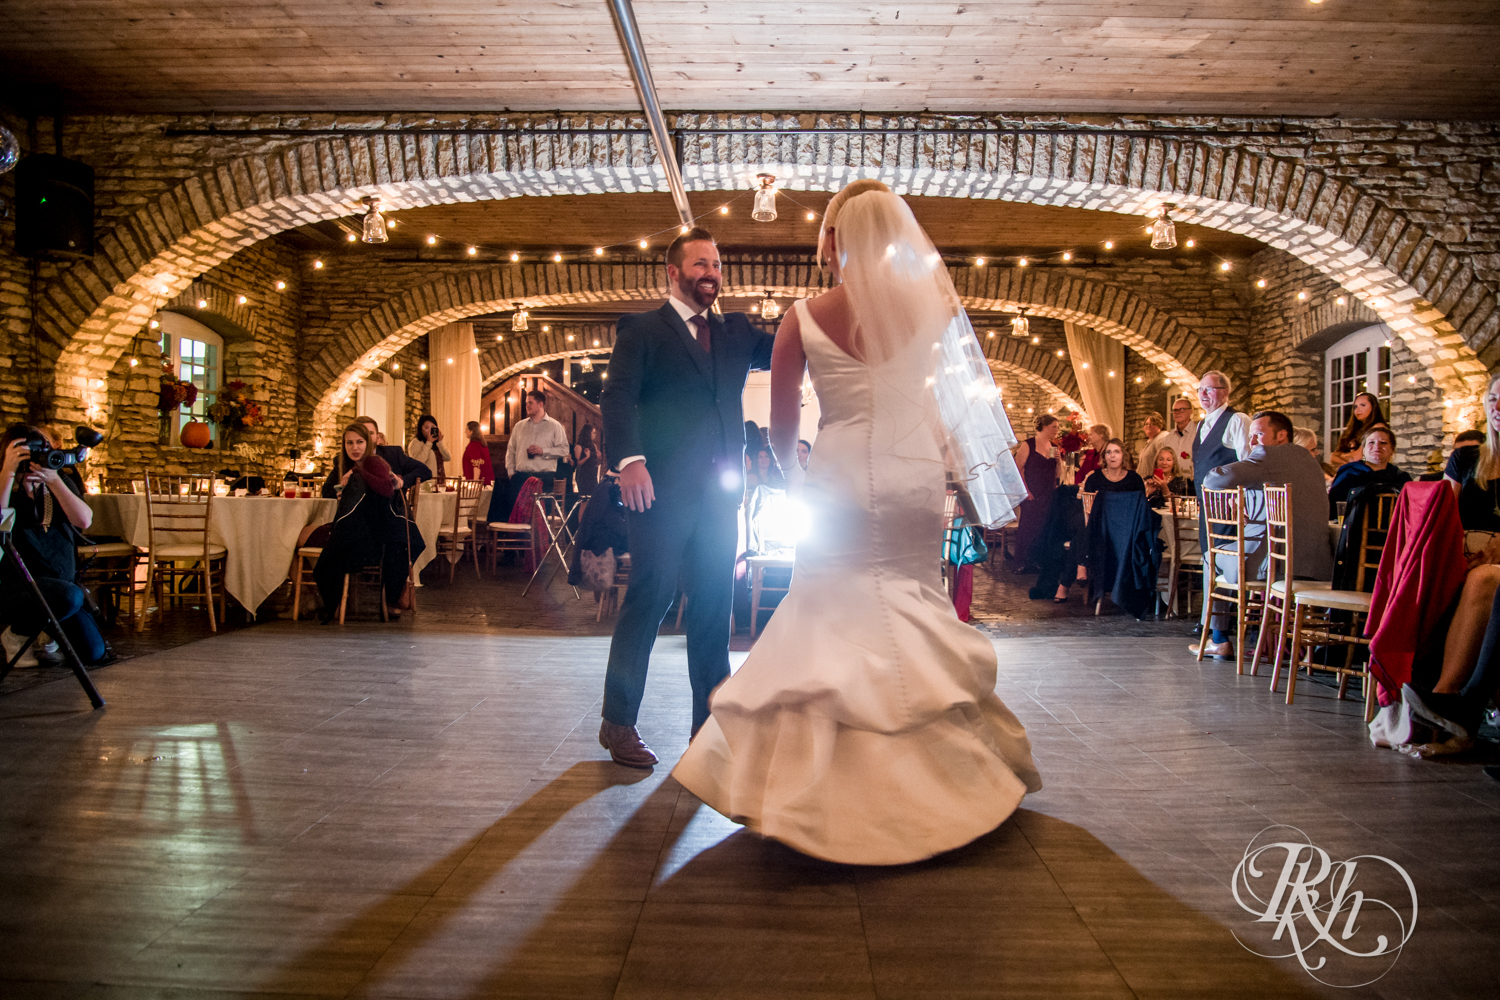 Amanda & Luke - Minnesota Wedding Photography - Mayowood Stone Barn - Rochester - RKH Images - Blog (66 of 67).jpg